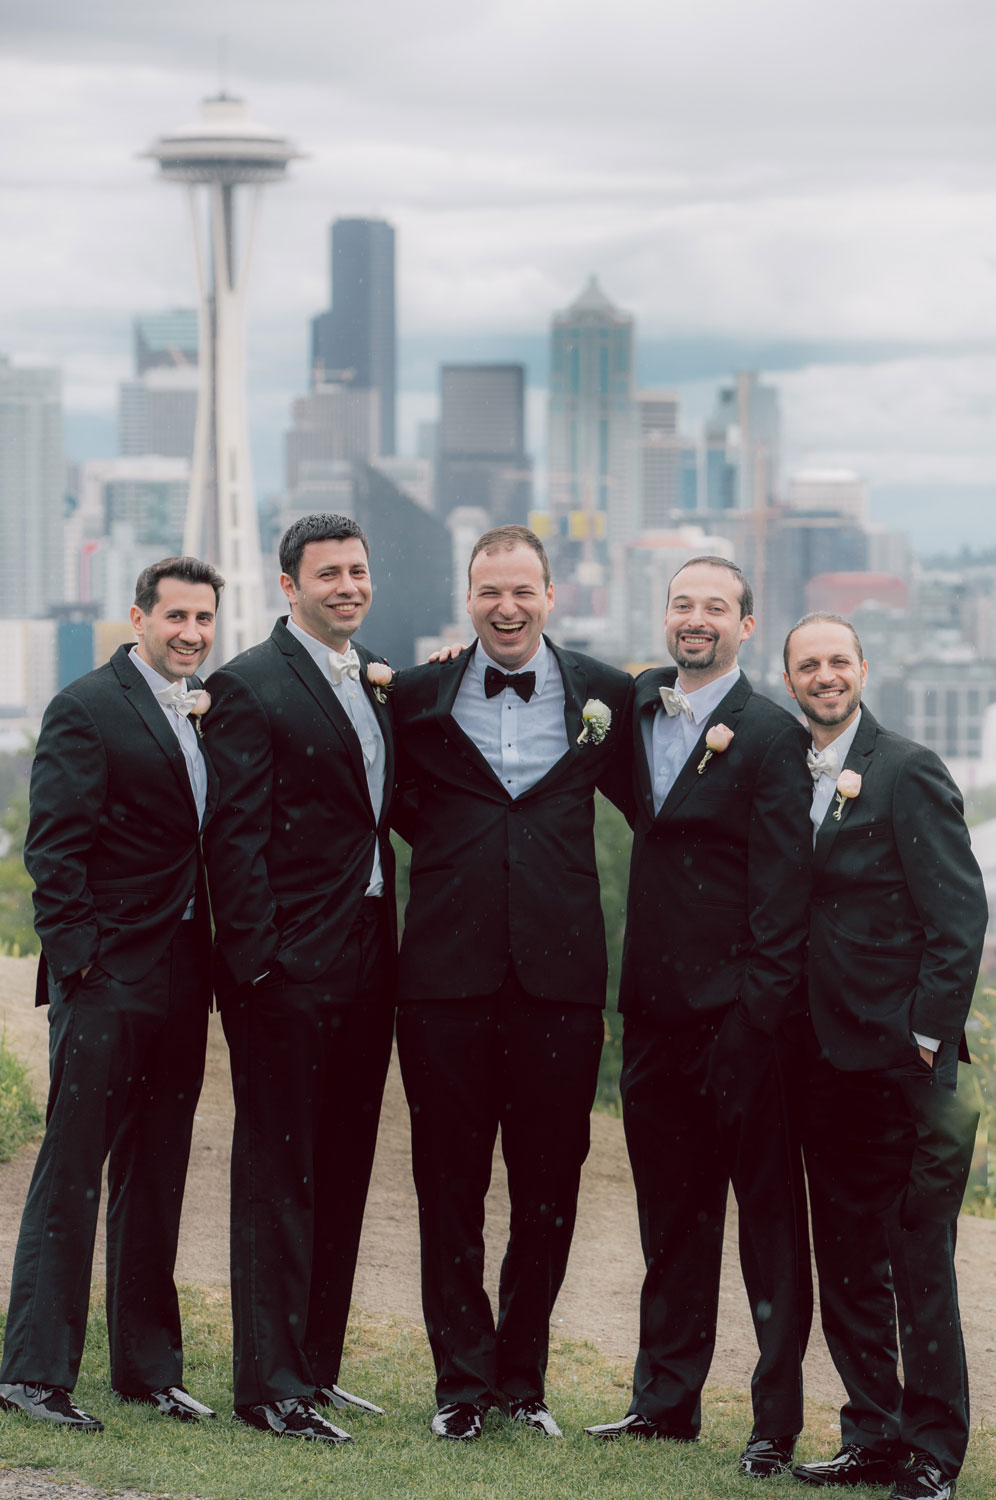 four-seasons-seattle-wedding-clane-gessel-photos-15